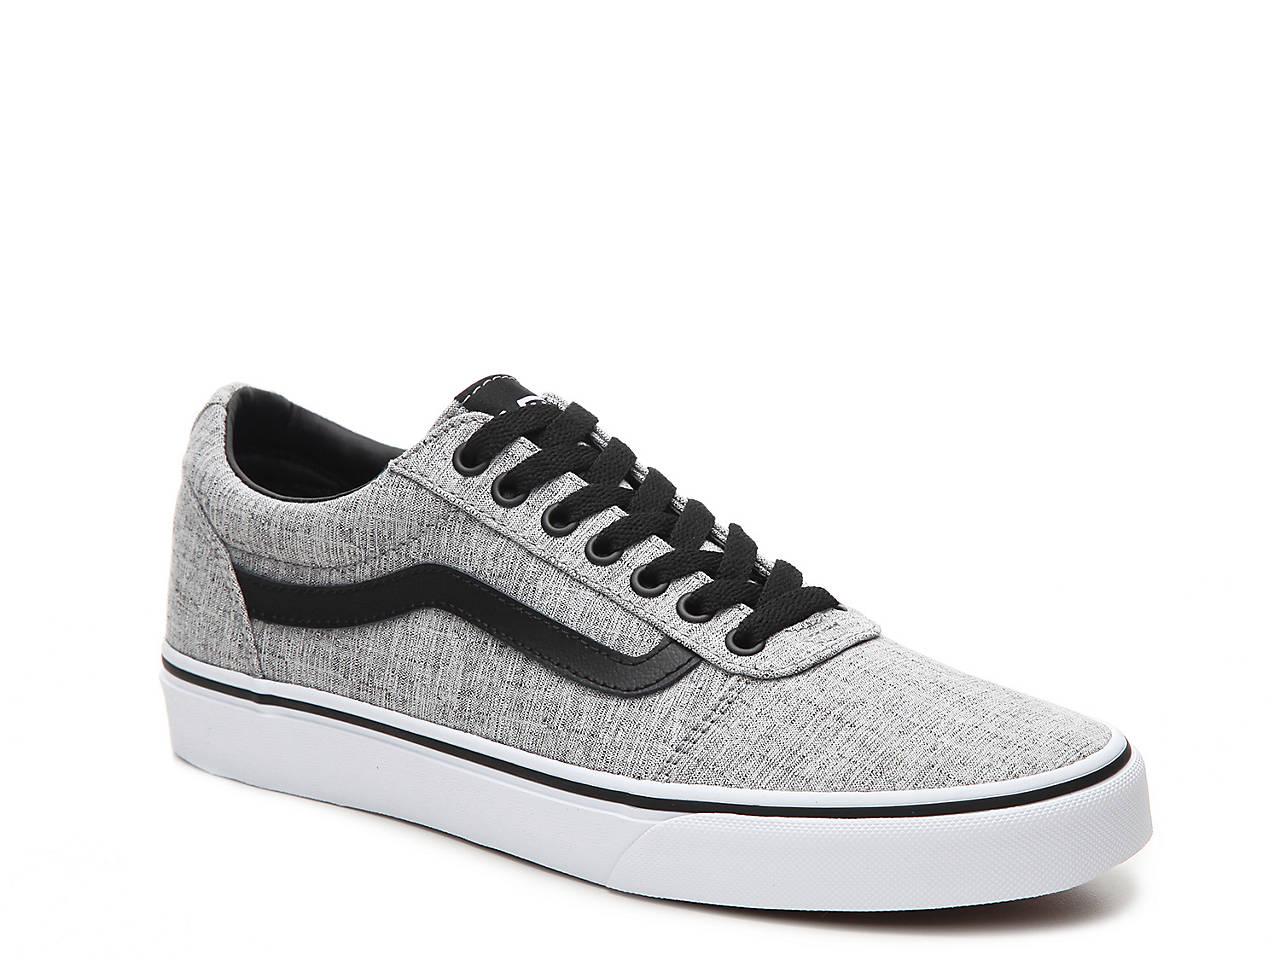 vans ward lo canvas sneaker men s men s shoes dsw